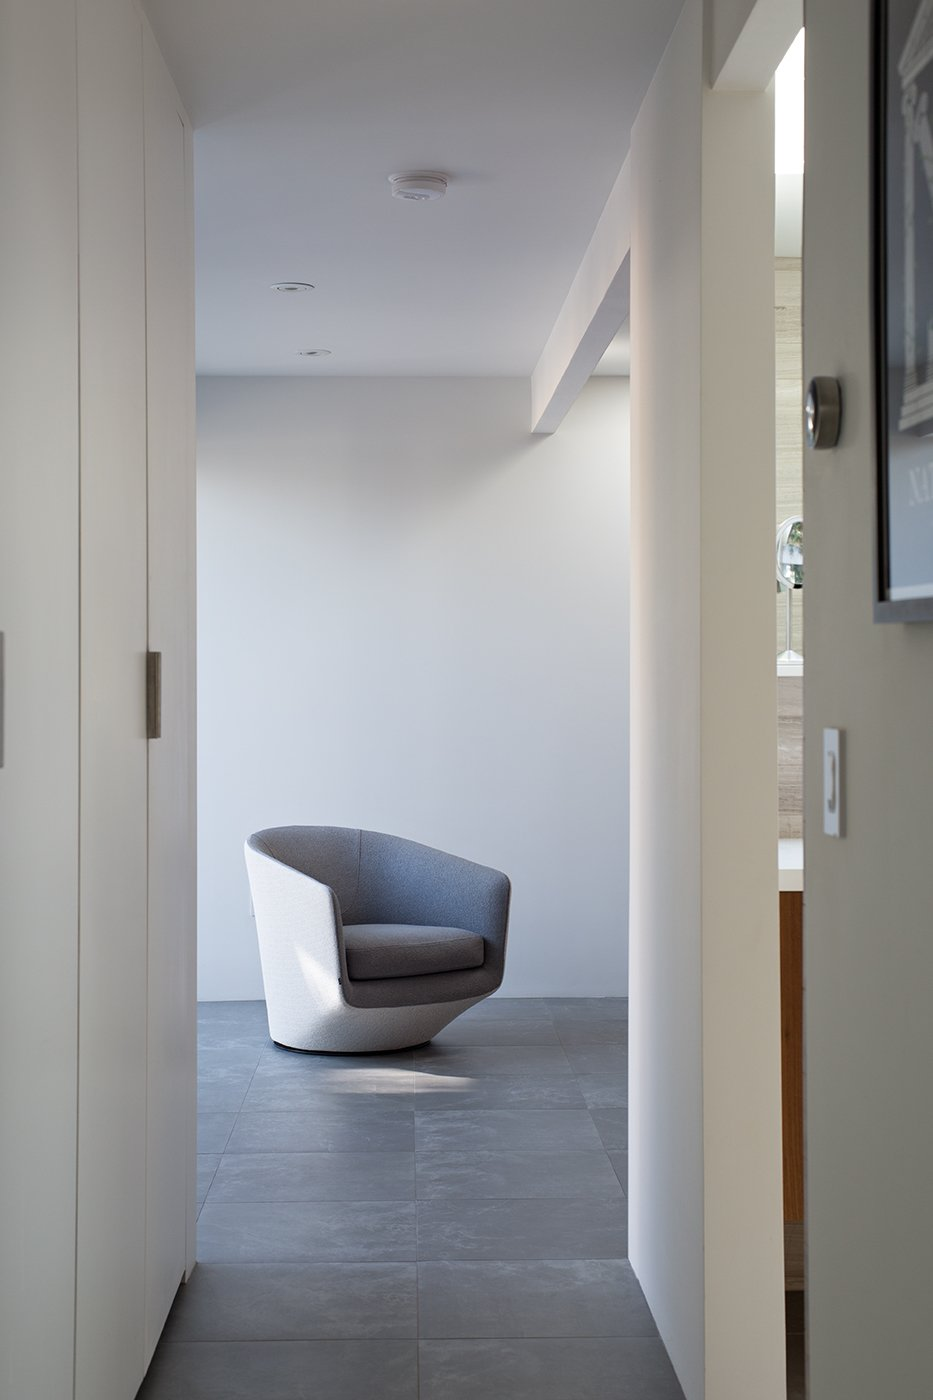 Hallway and Porcelain Tile Floor The floors are covered in two-foot square Nextra Piombo tiles by Monocibec. A U-Turn chair designed by Niels Bendtsen echoes the crisp, sculptural qualities of the interior spaces.  100+ Best Modern Seating Designs from Indoor-Outdoor Home by a Midcentury Master Gets a Faithful Update